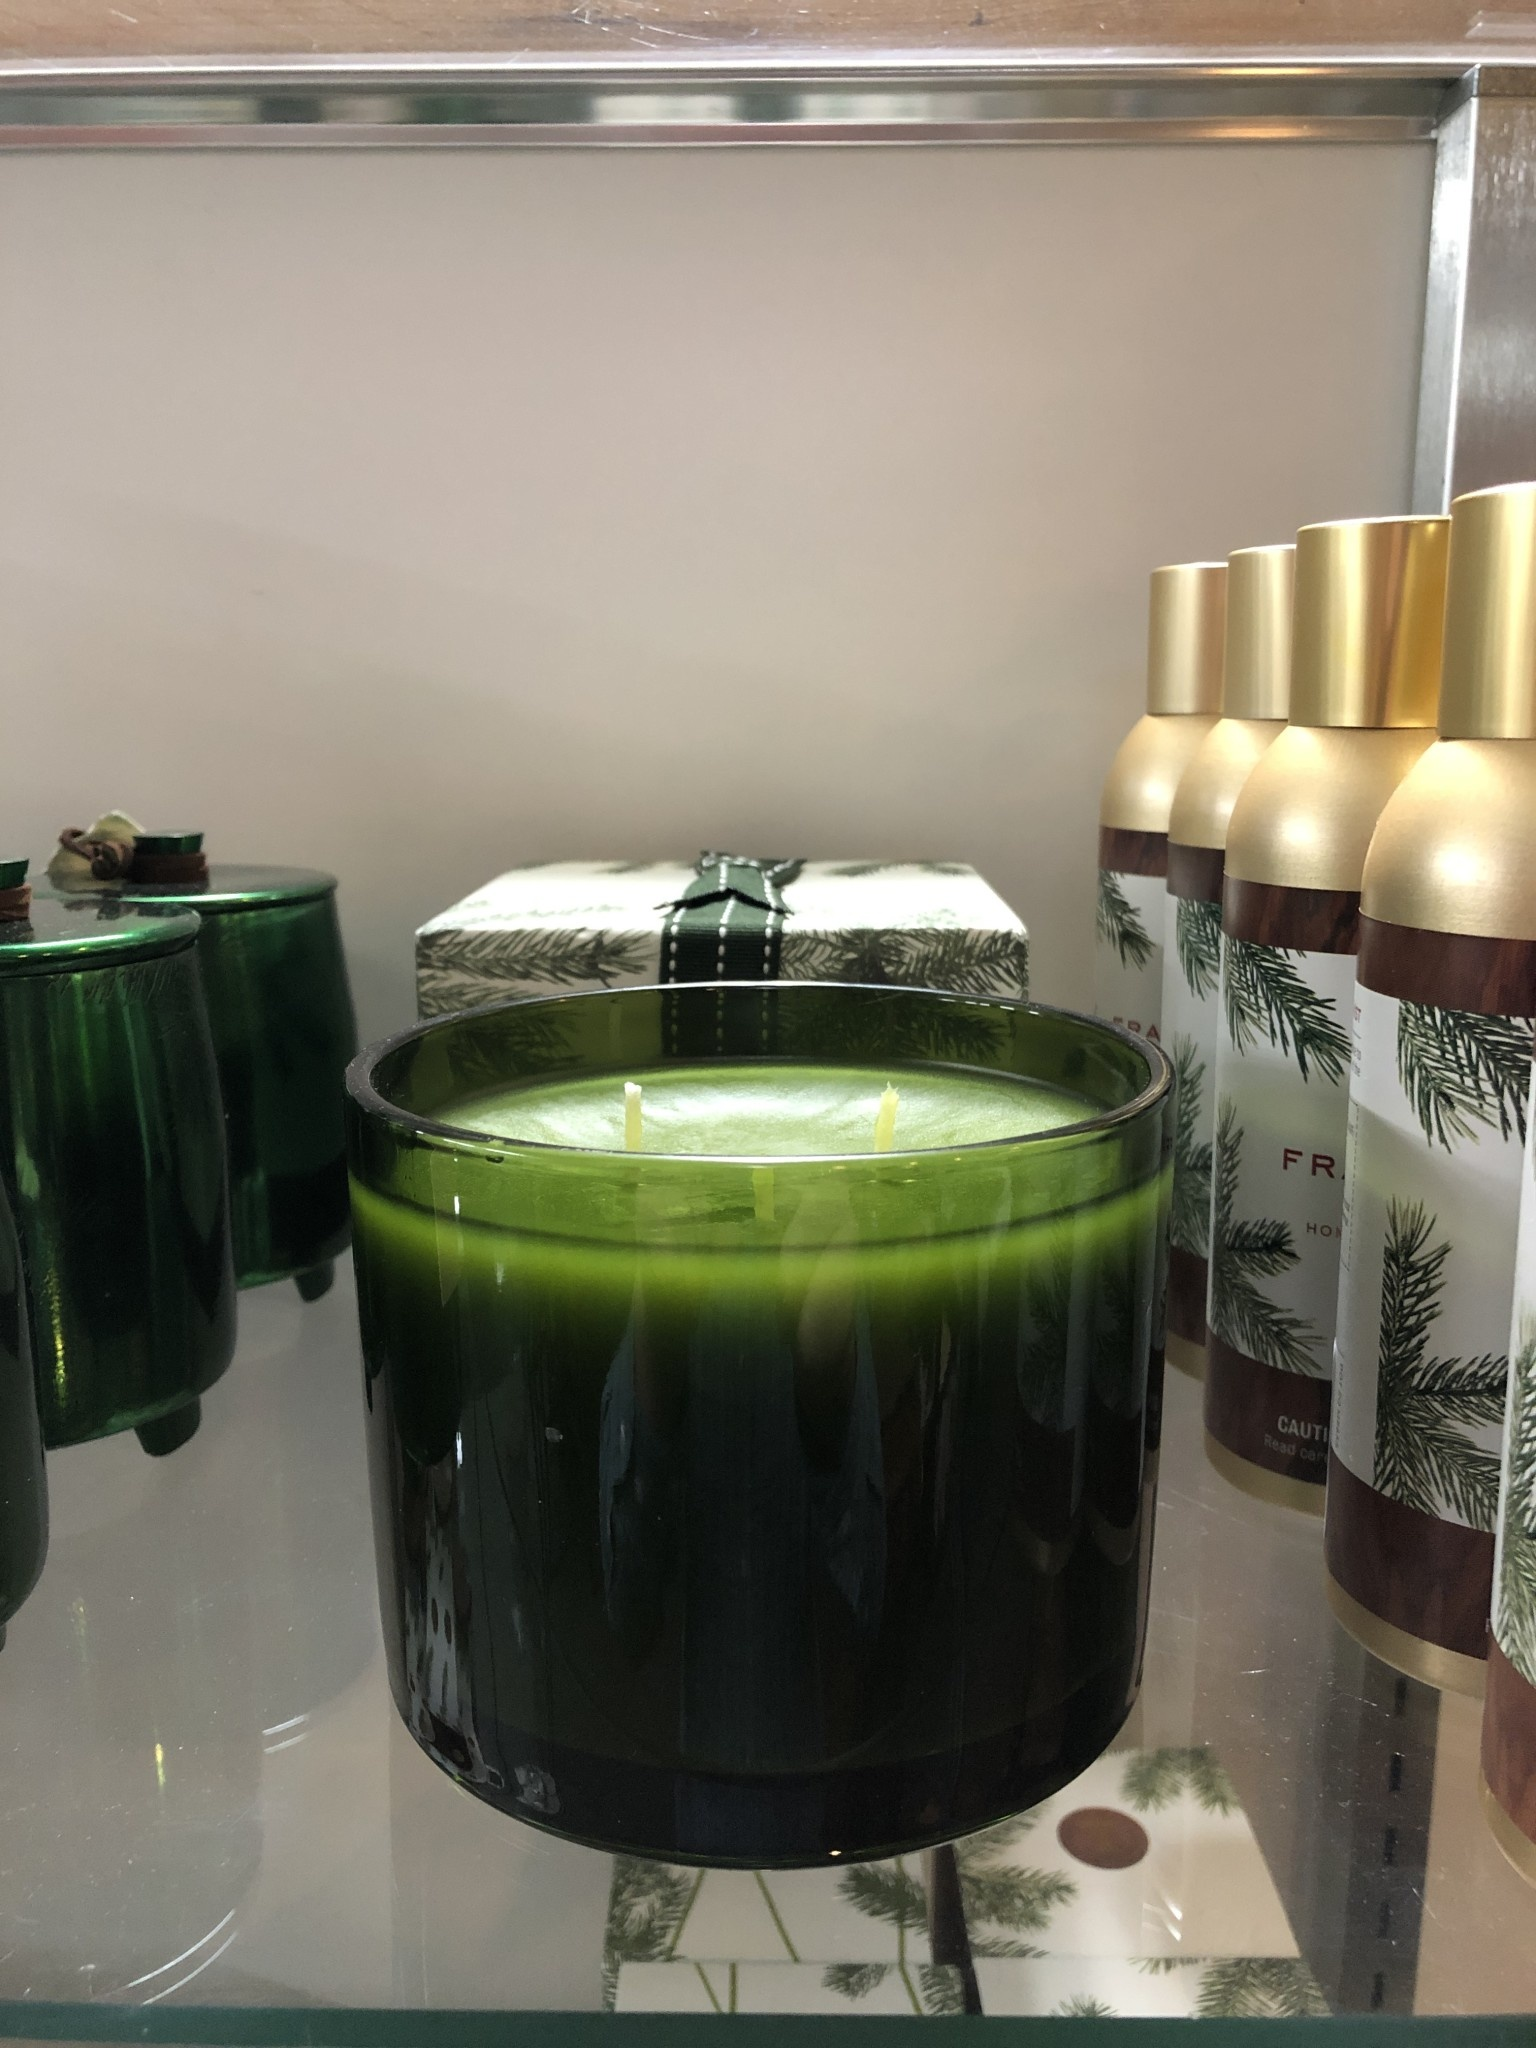 Frasier Fir Poured Candle 3-wick